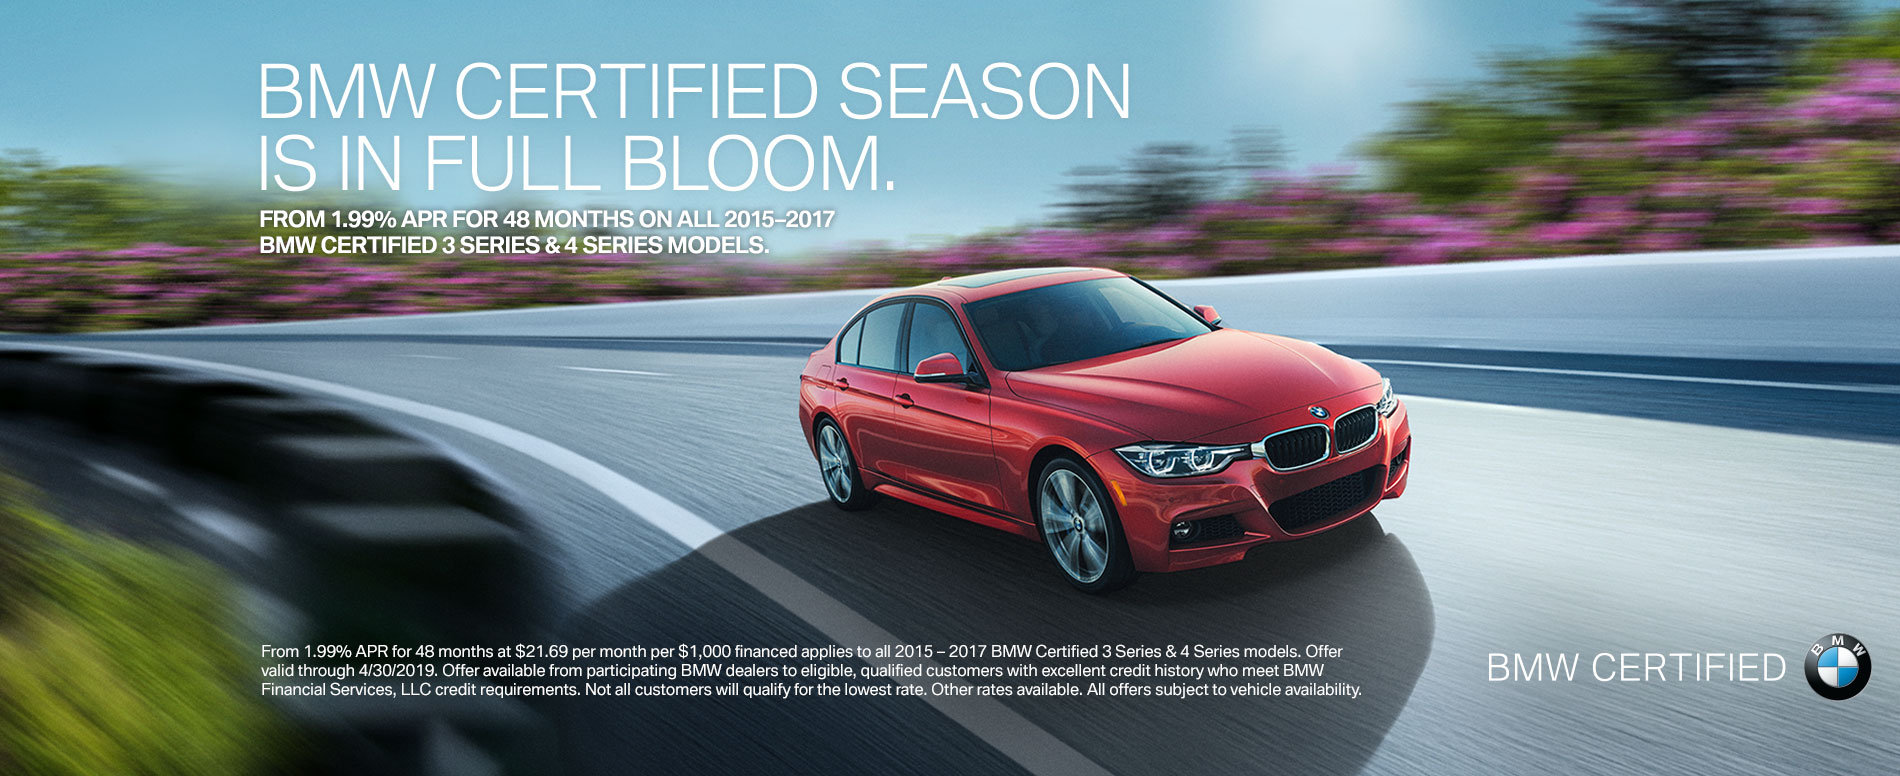 FROM 1.99% APR FOR 48 MONTHS ON ALL 2015 – 2017 BMW CERTIFIED 3